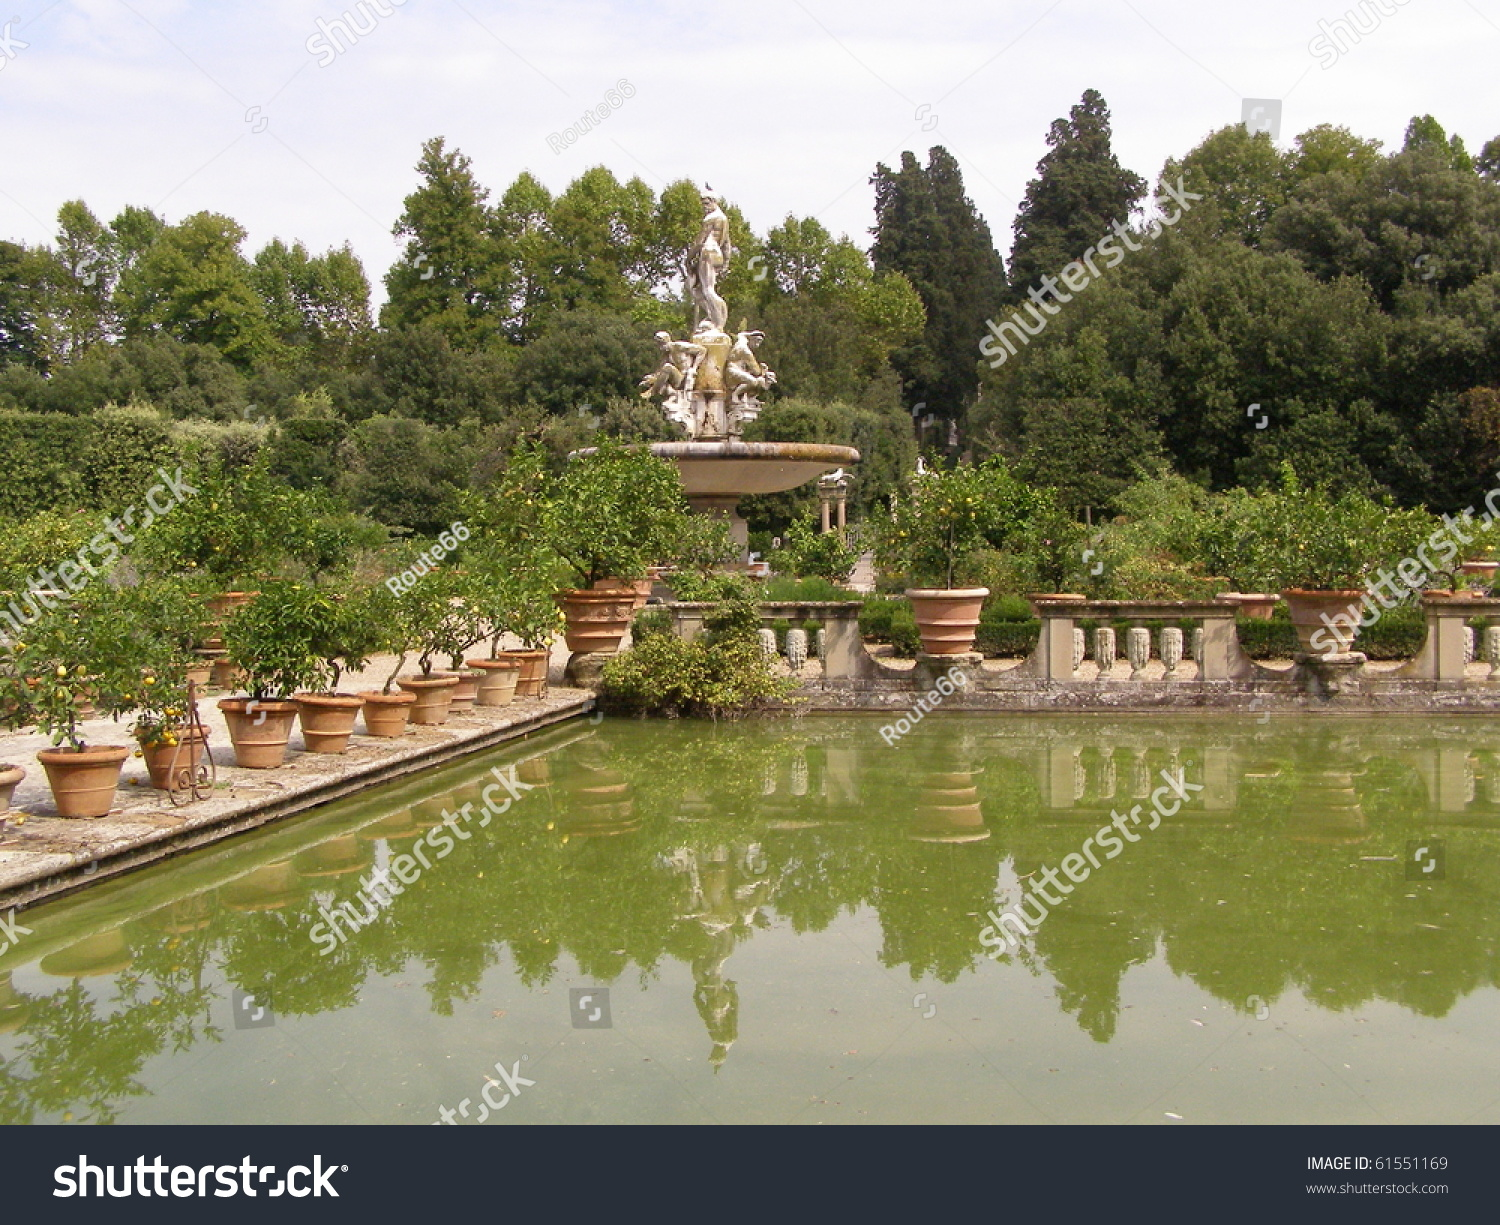 Giardino Firenze Pool Italian Garden Giardino Di Boboli Stock Photo Edit Now